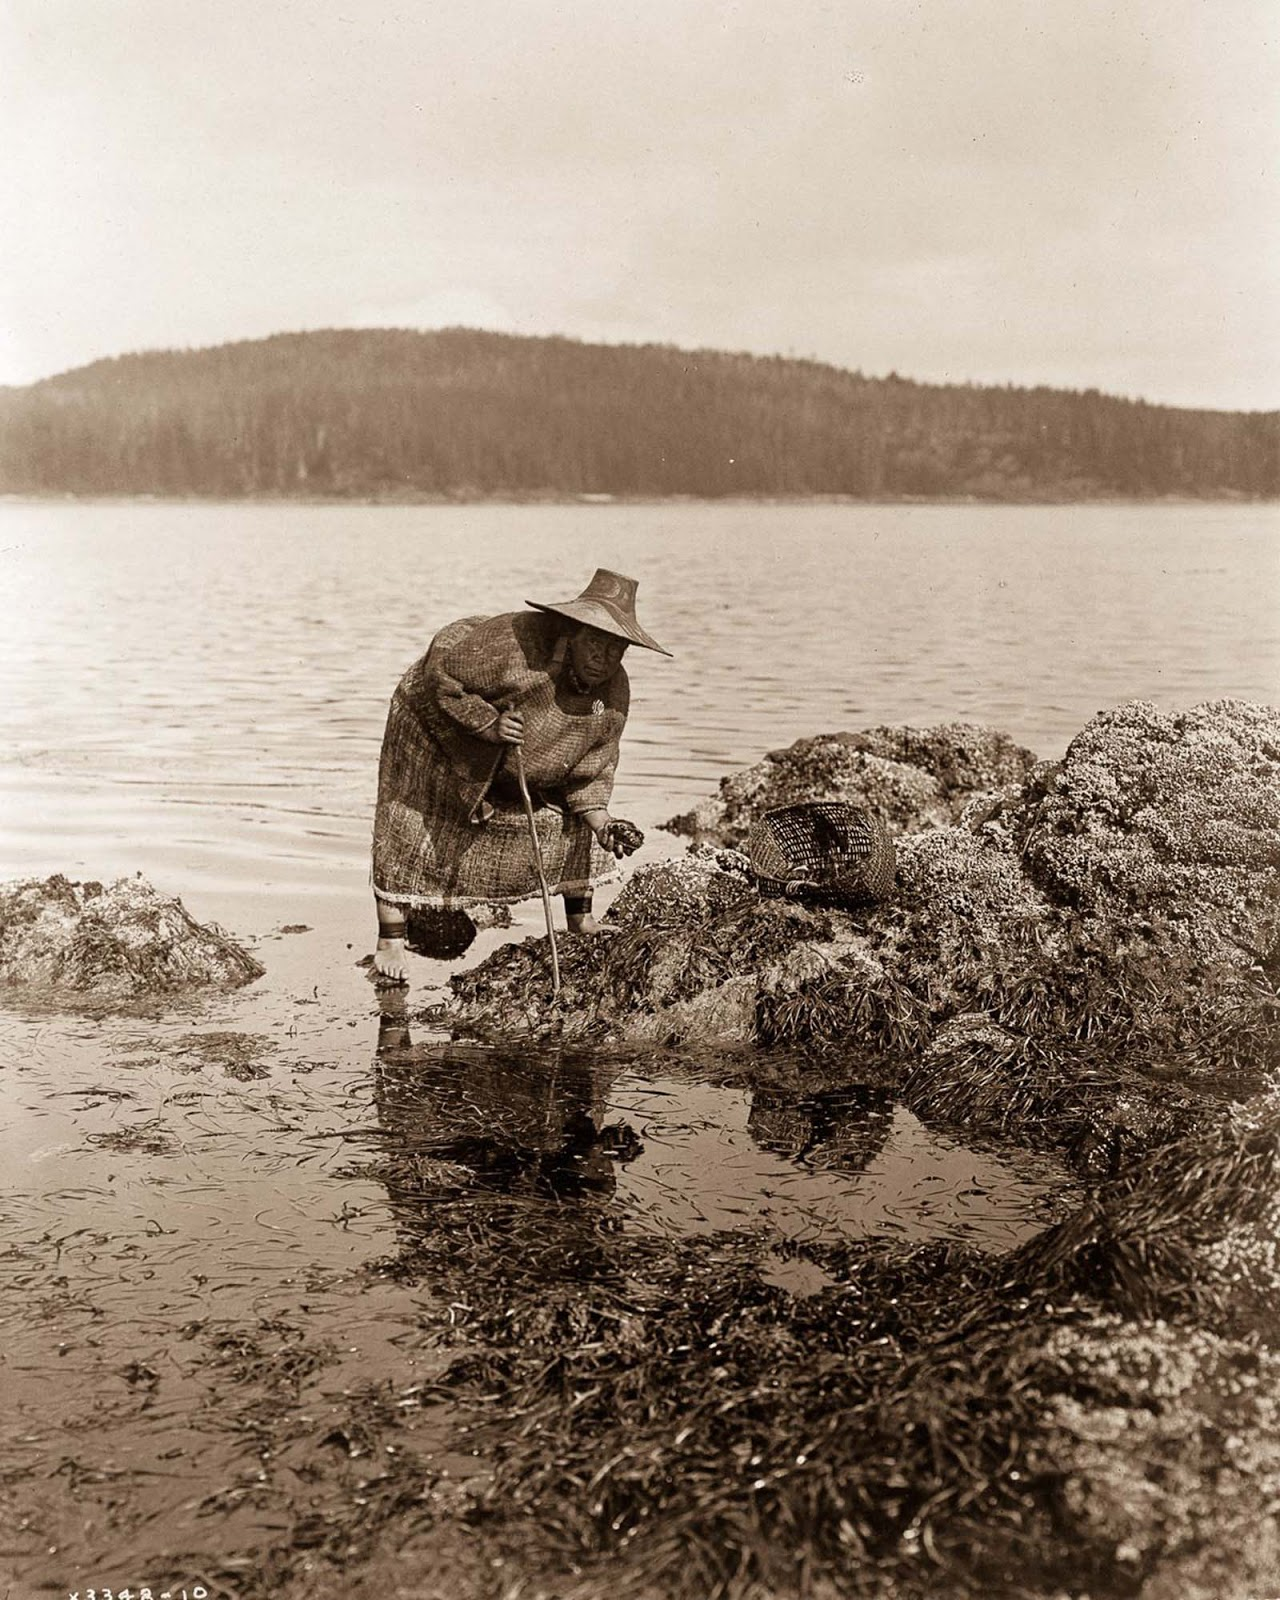 A Kwakiutl gatherer hunts abalones in Washington. 1910.